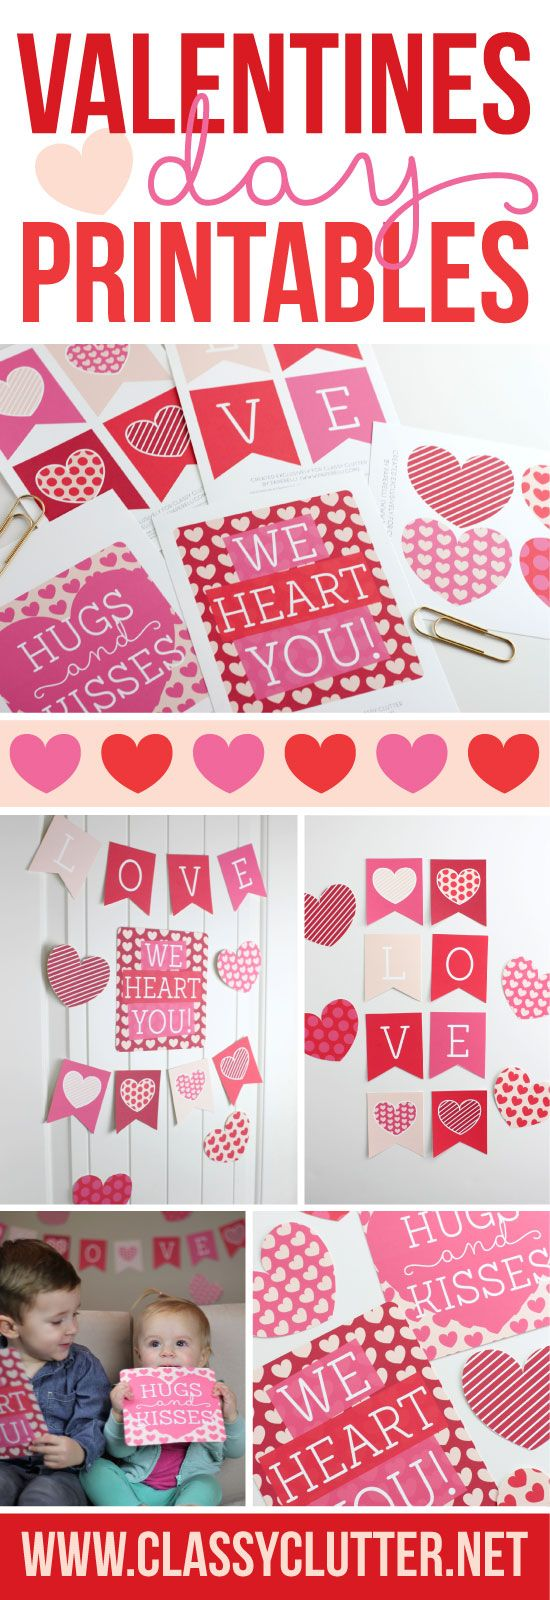 Such an adorable Valentines Day Printable! The girls loved waking up to this cute printable on their wall! Click to get your free printable